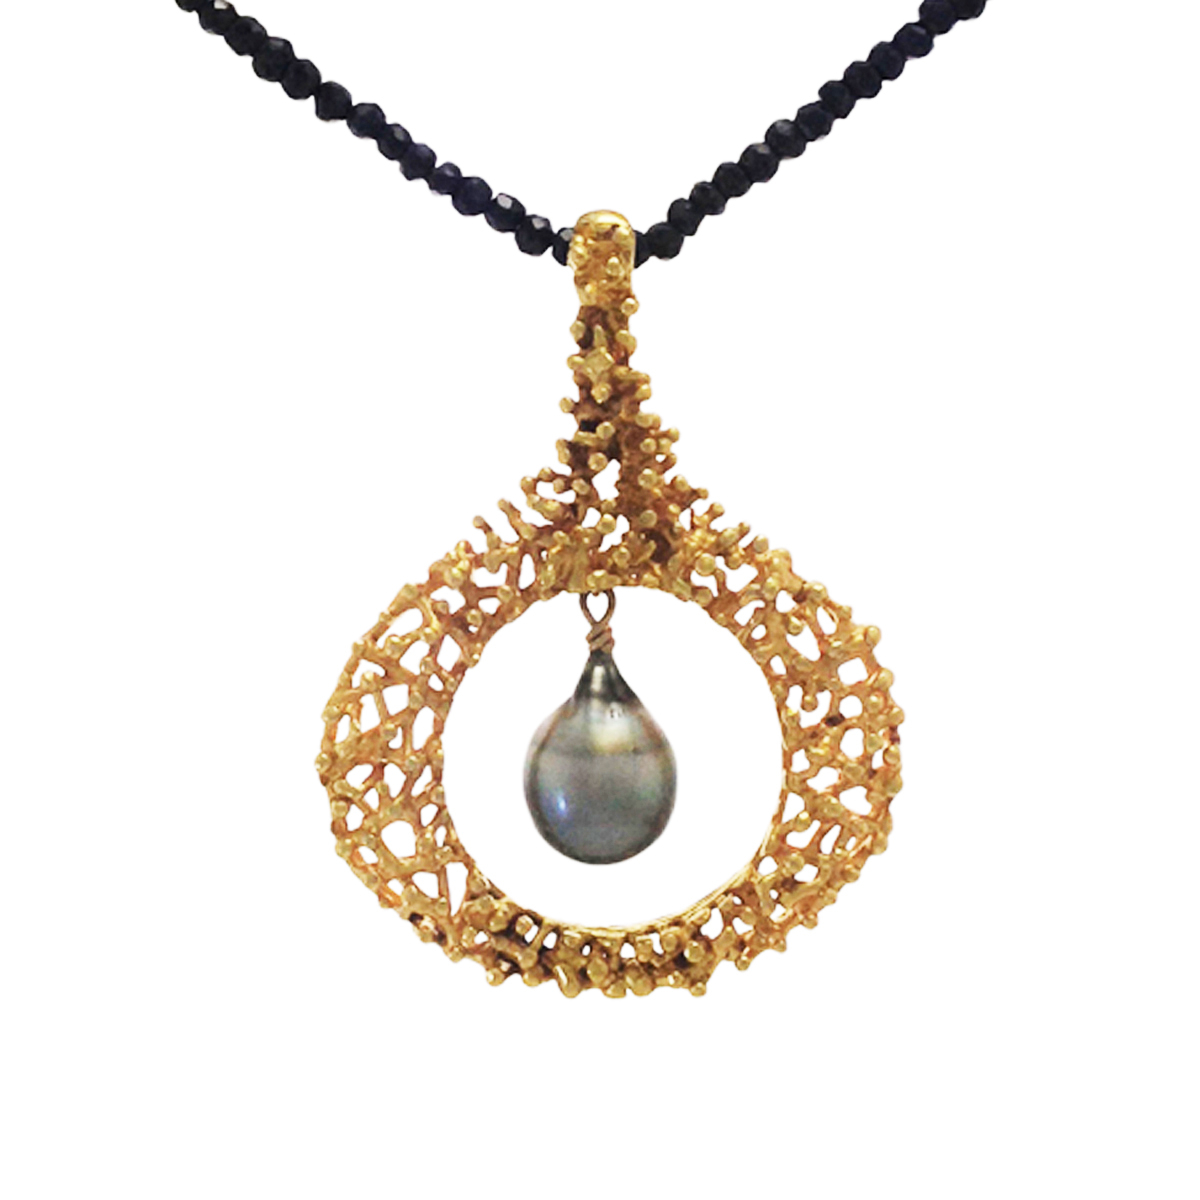 Twiggy gold plated pendant with Tahitian pearl and black spinel